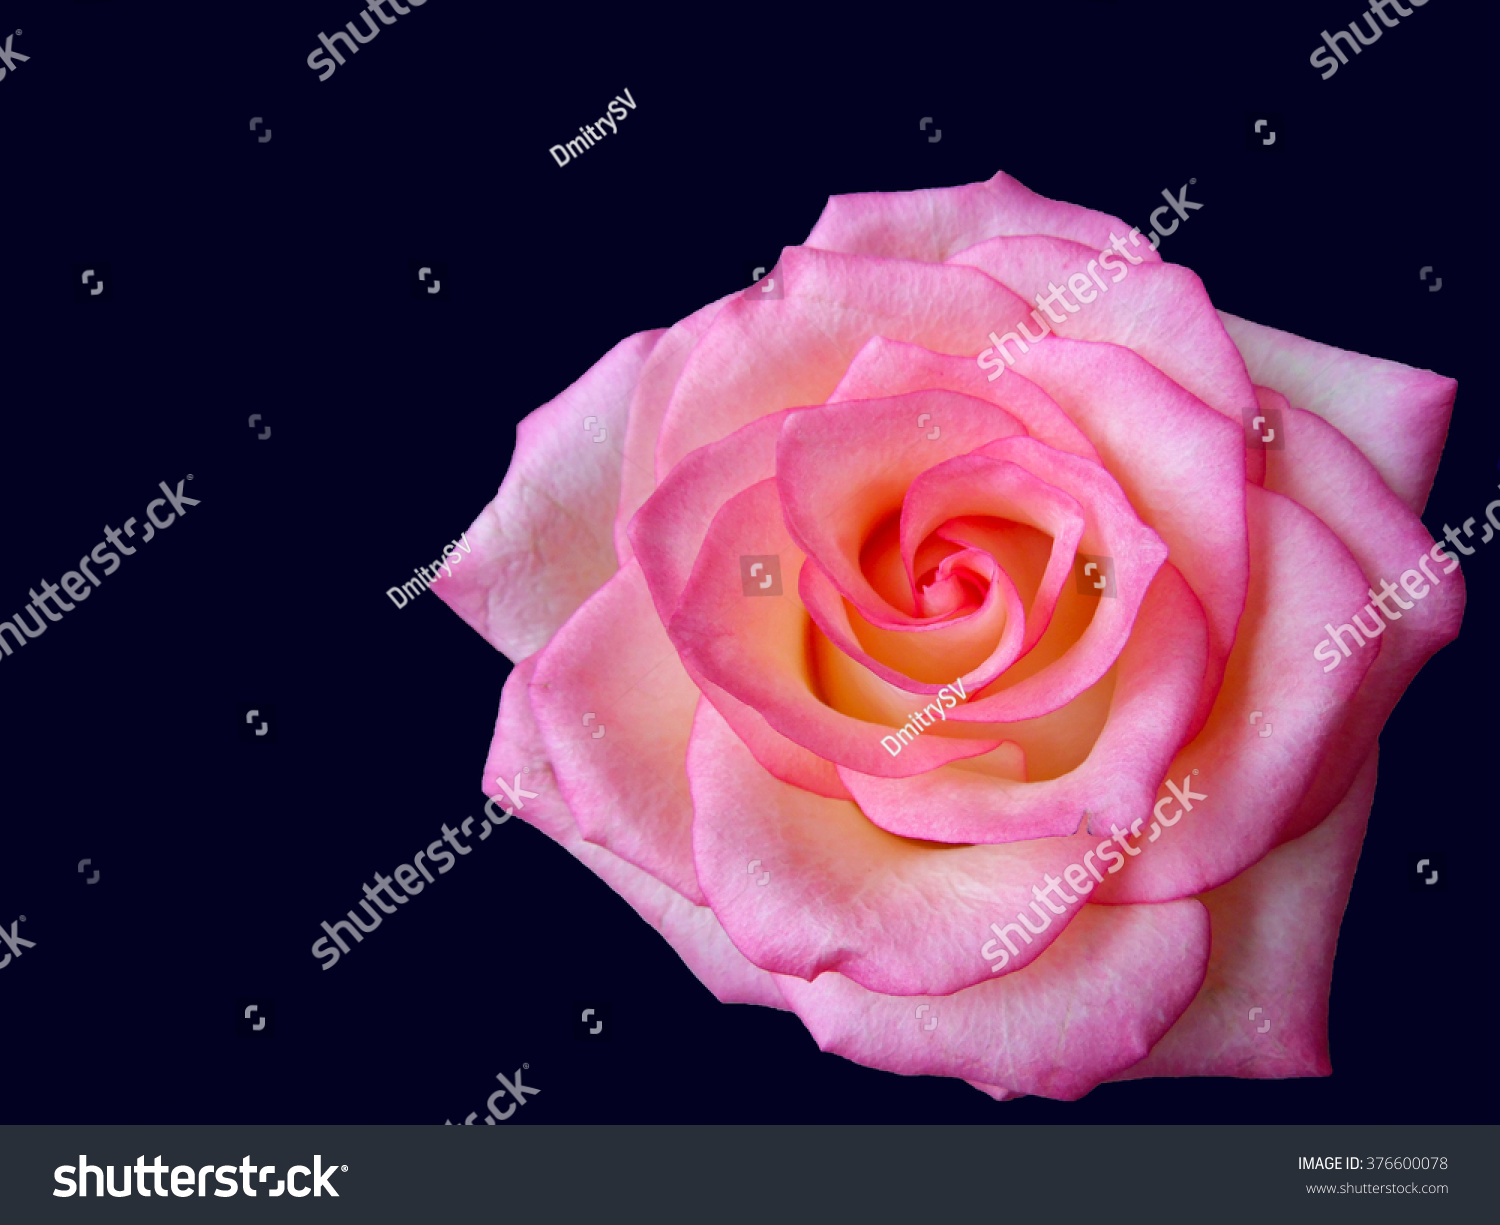 Rose flower these flowers often contain stock photo edit now rose flower these flowers often contain houses and cultivated gardens they are very beautiful izmirmasajfo